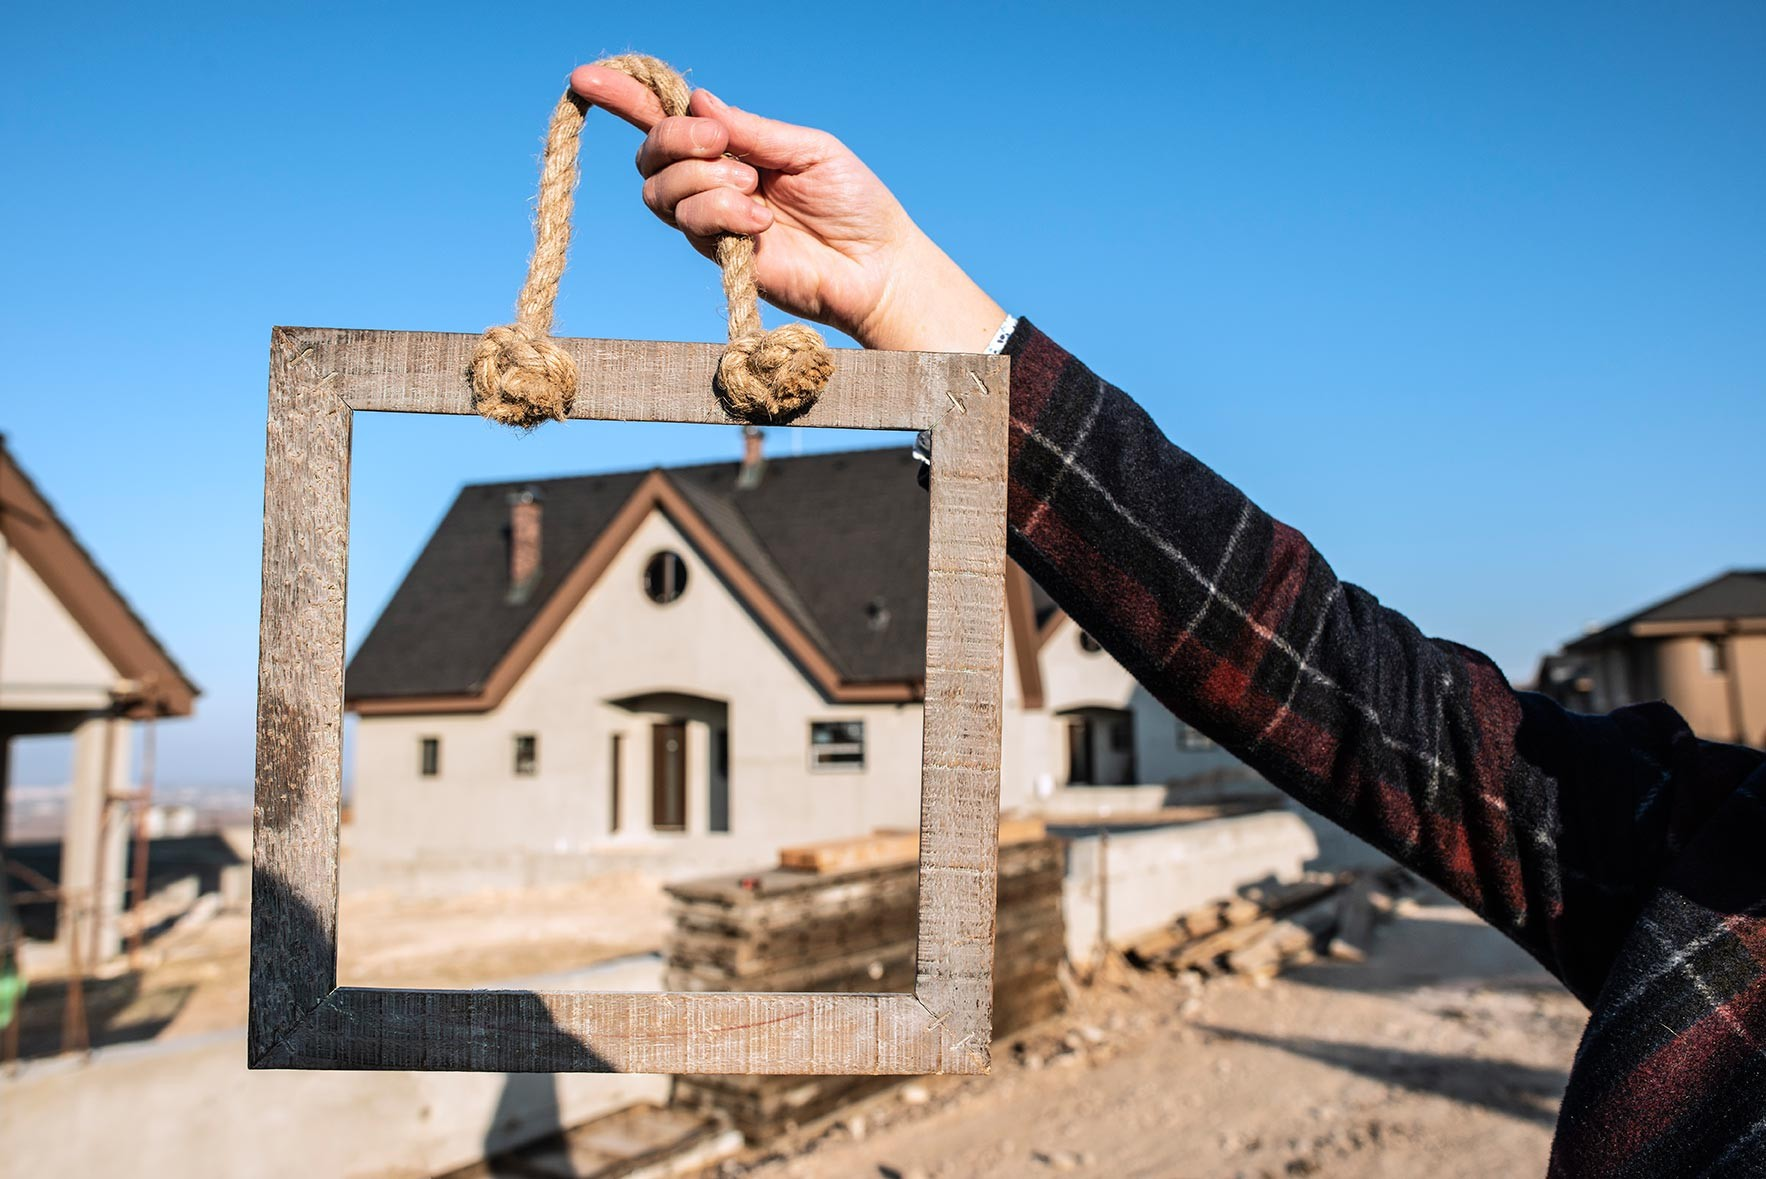 MDH Construction is home construction company that can build your dream home